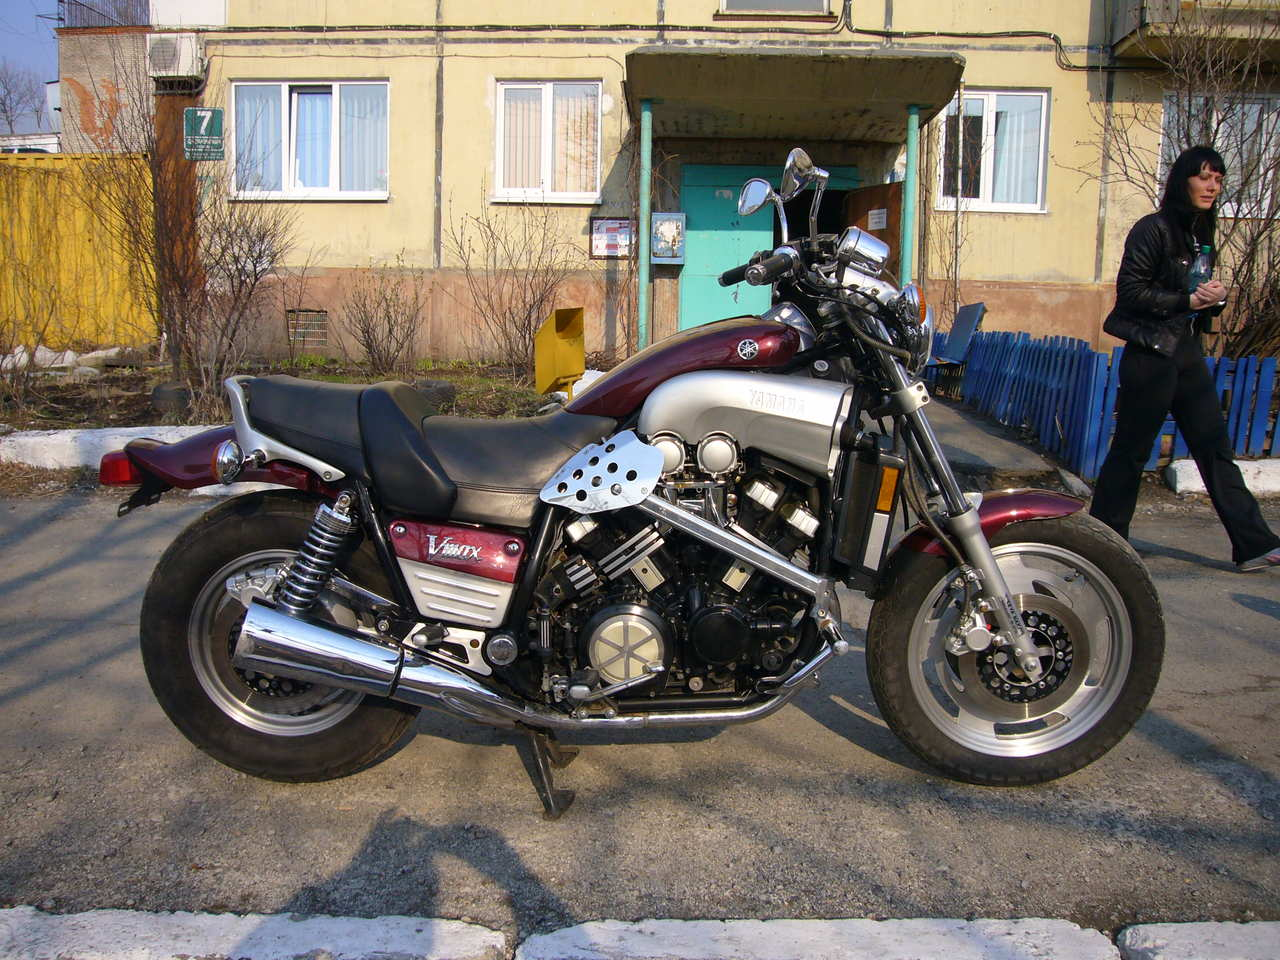 1992 yamaha vmax1200 wallpapers for sale for Yamaha vmax outboard review